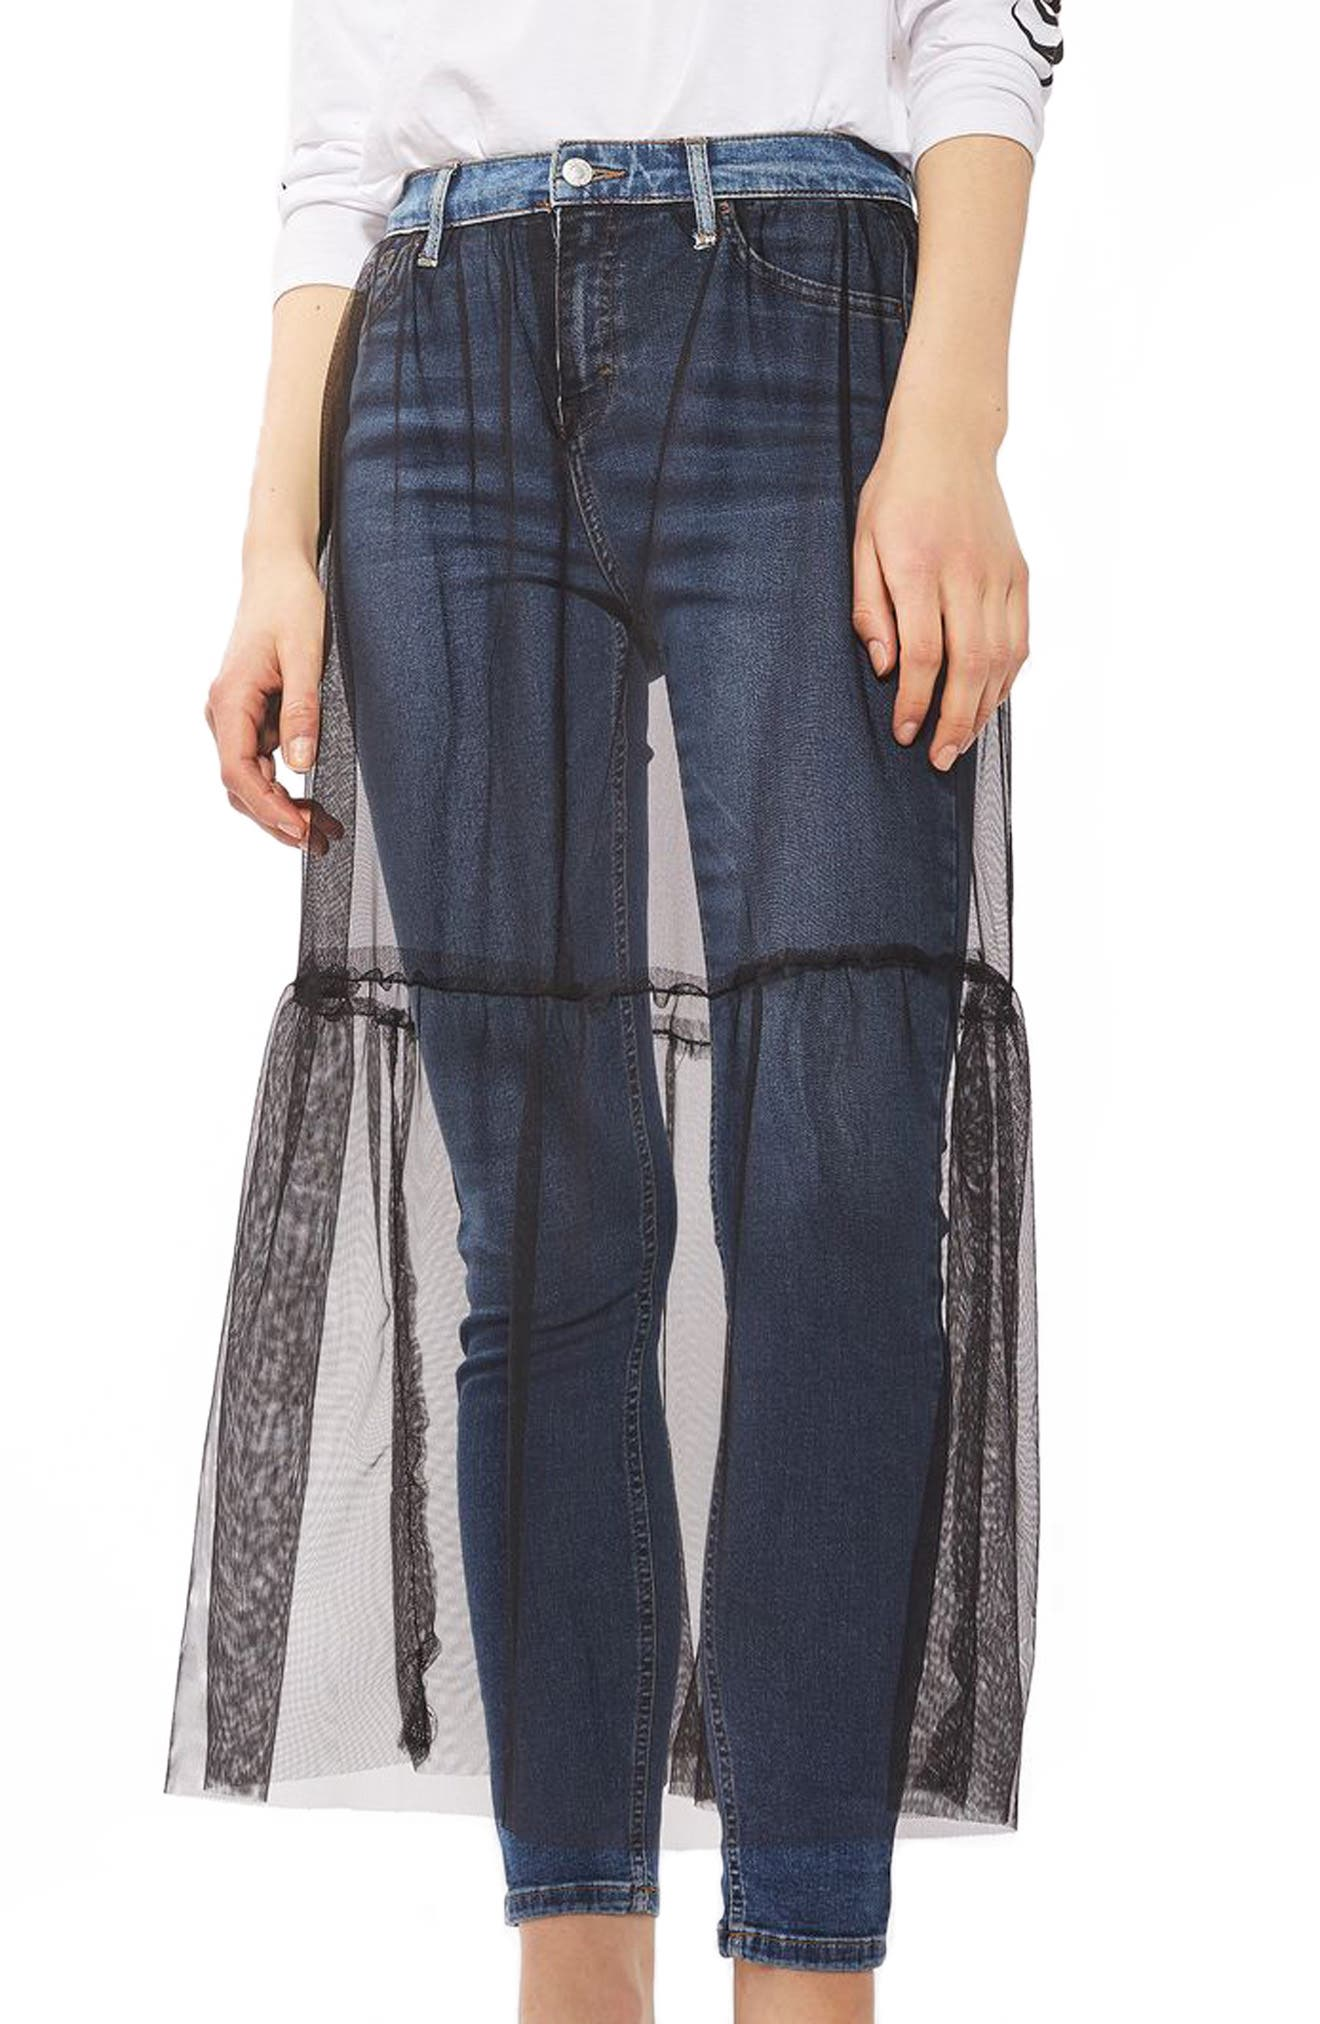 TOPSHOP, Jamie Tulle Overlay Skinny Jeans, Main thumbnail 1, color, 400